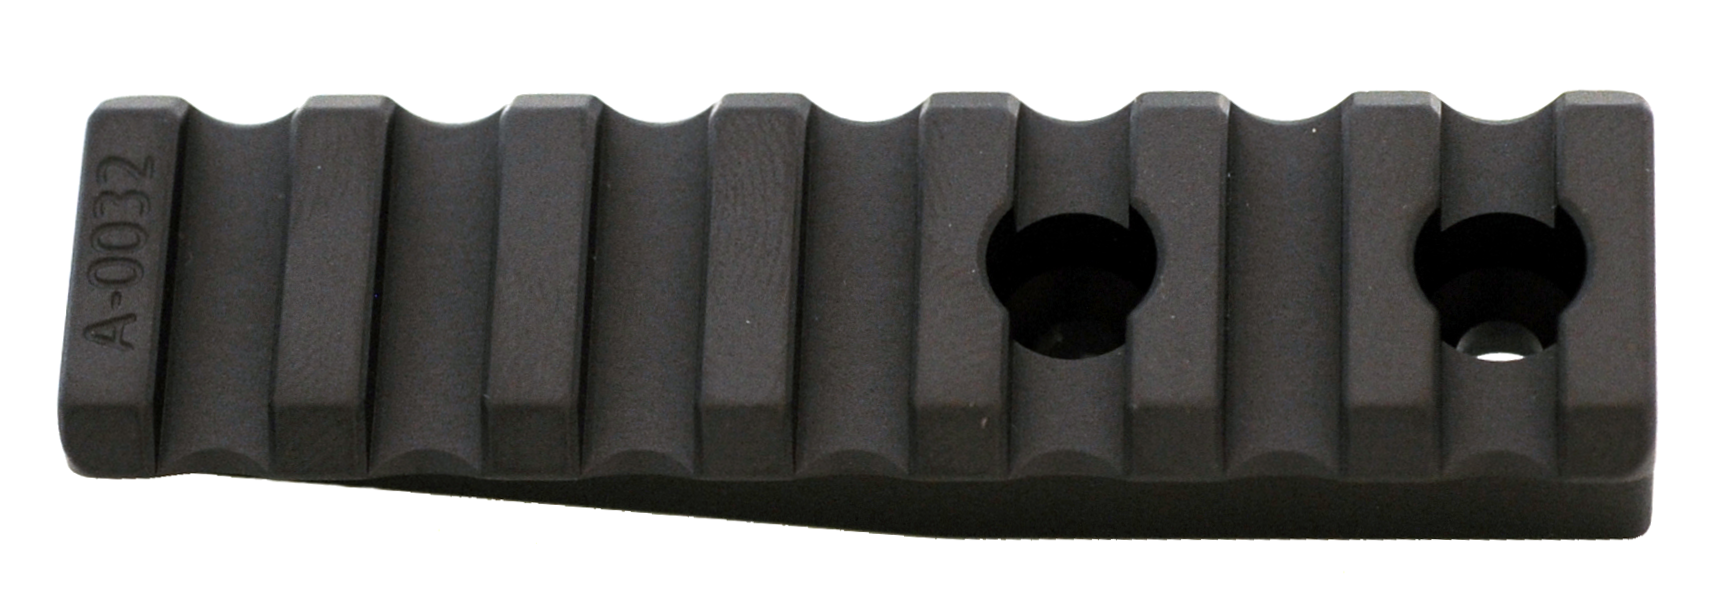 A-0032 Picatinny Rail 14x75 mm